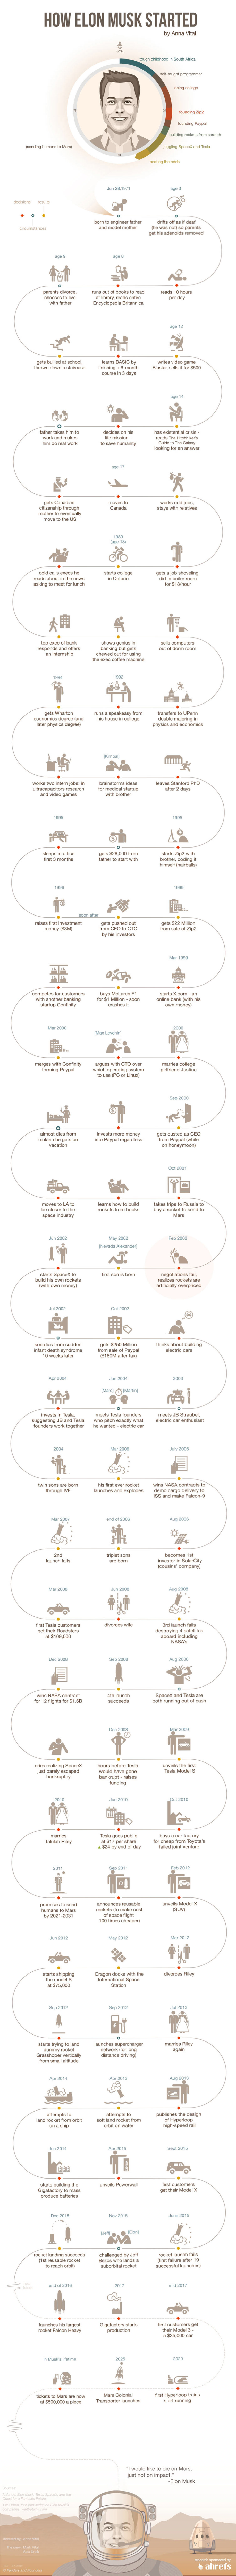 Elon Musk Biography Timeline Infographic